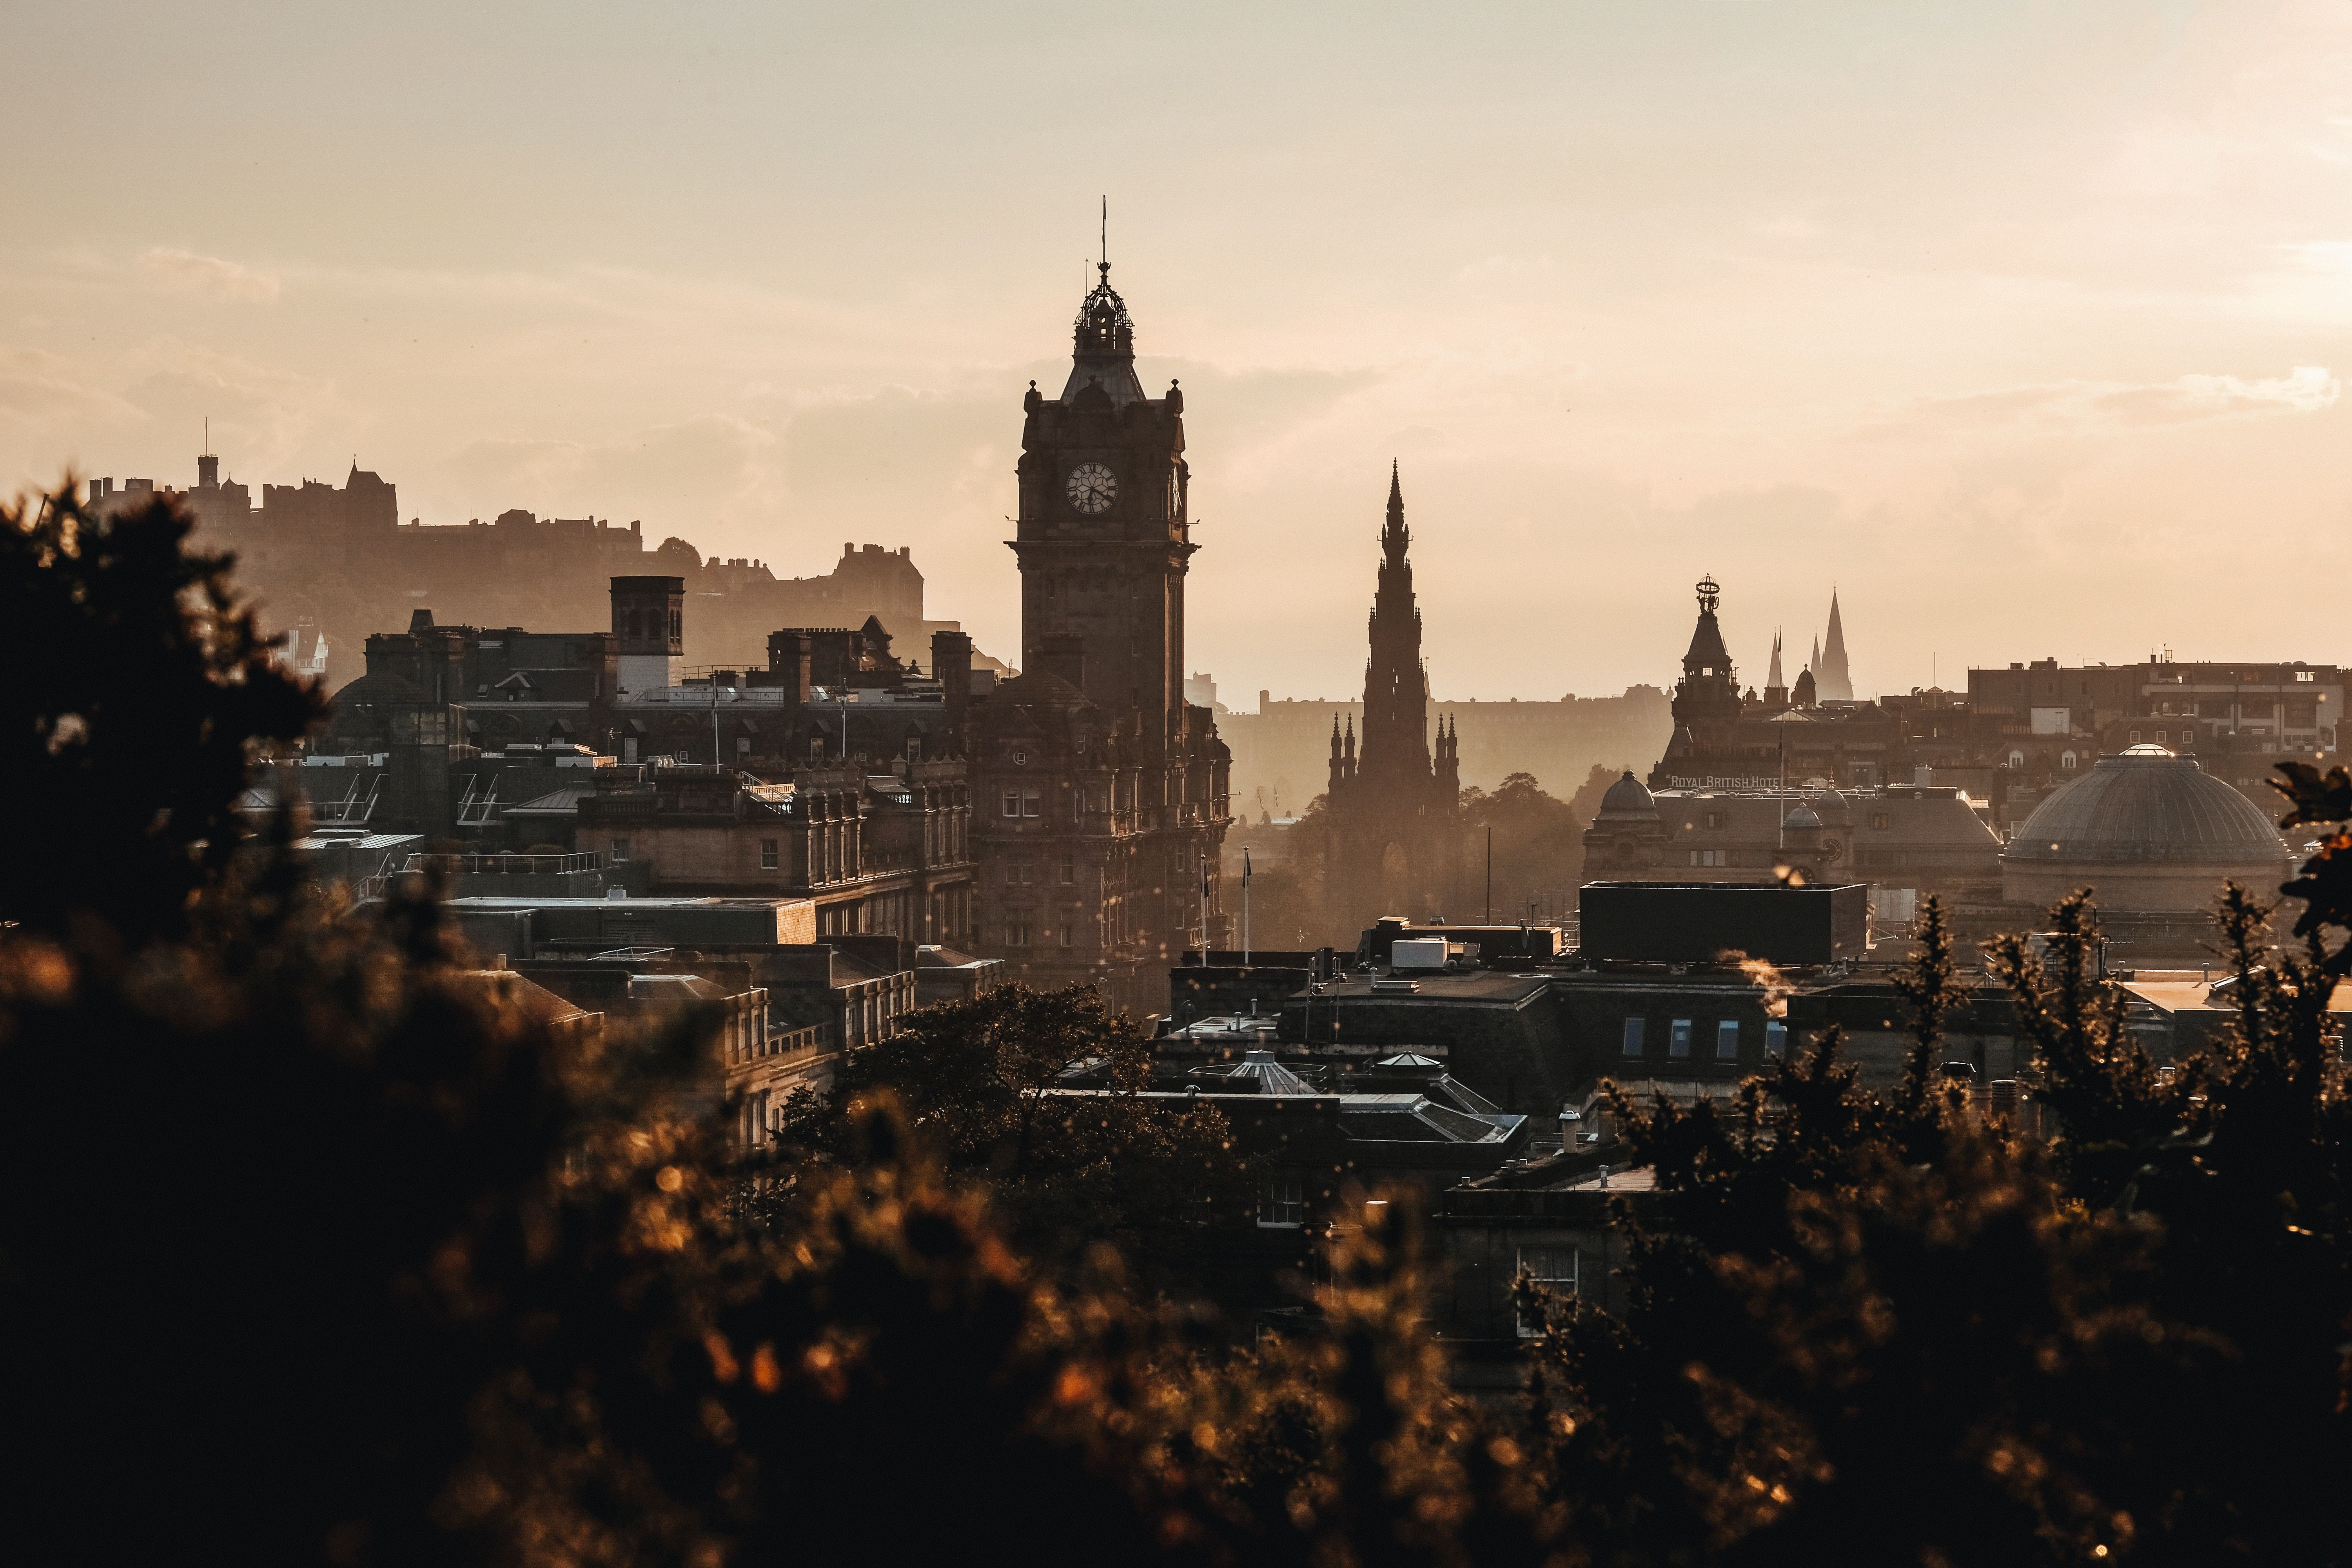 Discover the best attractions in Edinburgh including Edinburgh Castle, Scottish Parliament Building, Royal Yacht Britannia. #EdinburghxTourNano . . . . . #igersscotland #insta_scotland #instascotland #scotland_greatshots #ig_europe #igersscots #icu_britain #uk_photooftheday #vscotland #igs_europe #explorescotland #loves_europe #loves_scotland #visitscotland #scotlandlover #ukpotd #scotland #uk_greatshots #igs_europe #icu_scotland #edinburgh #edinburghlife #unlimitededinbur